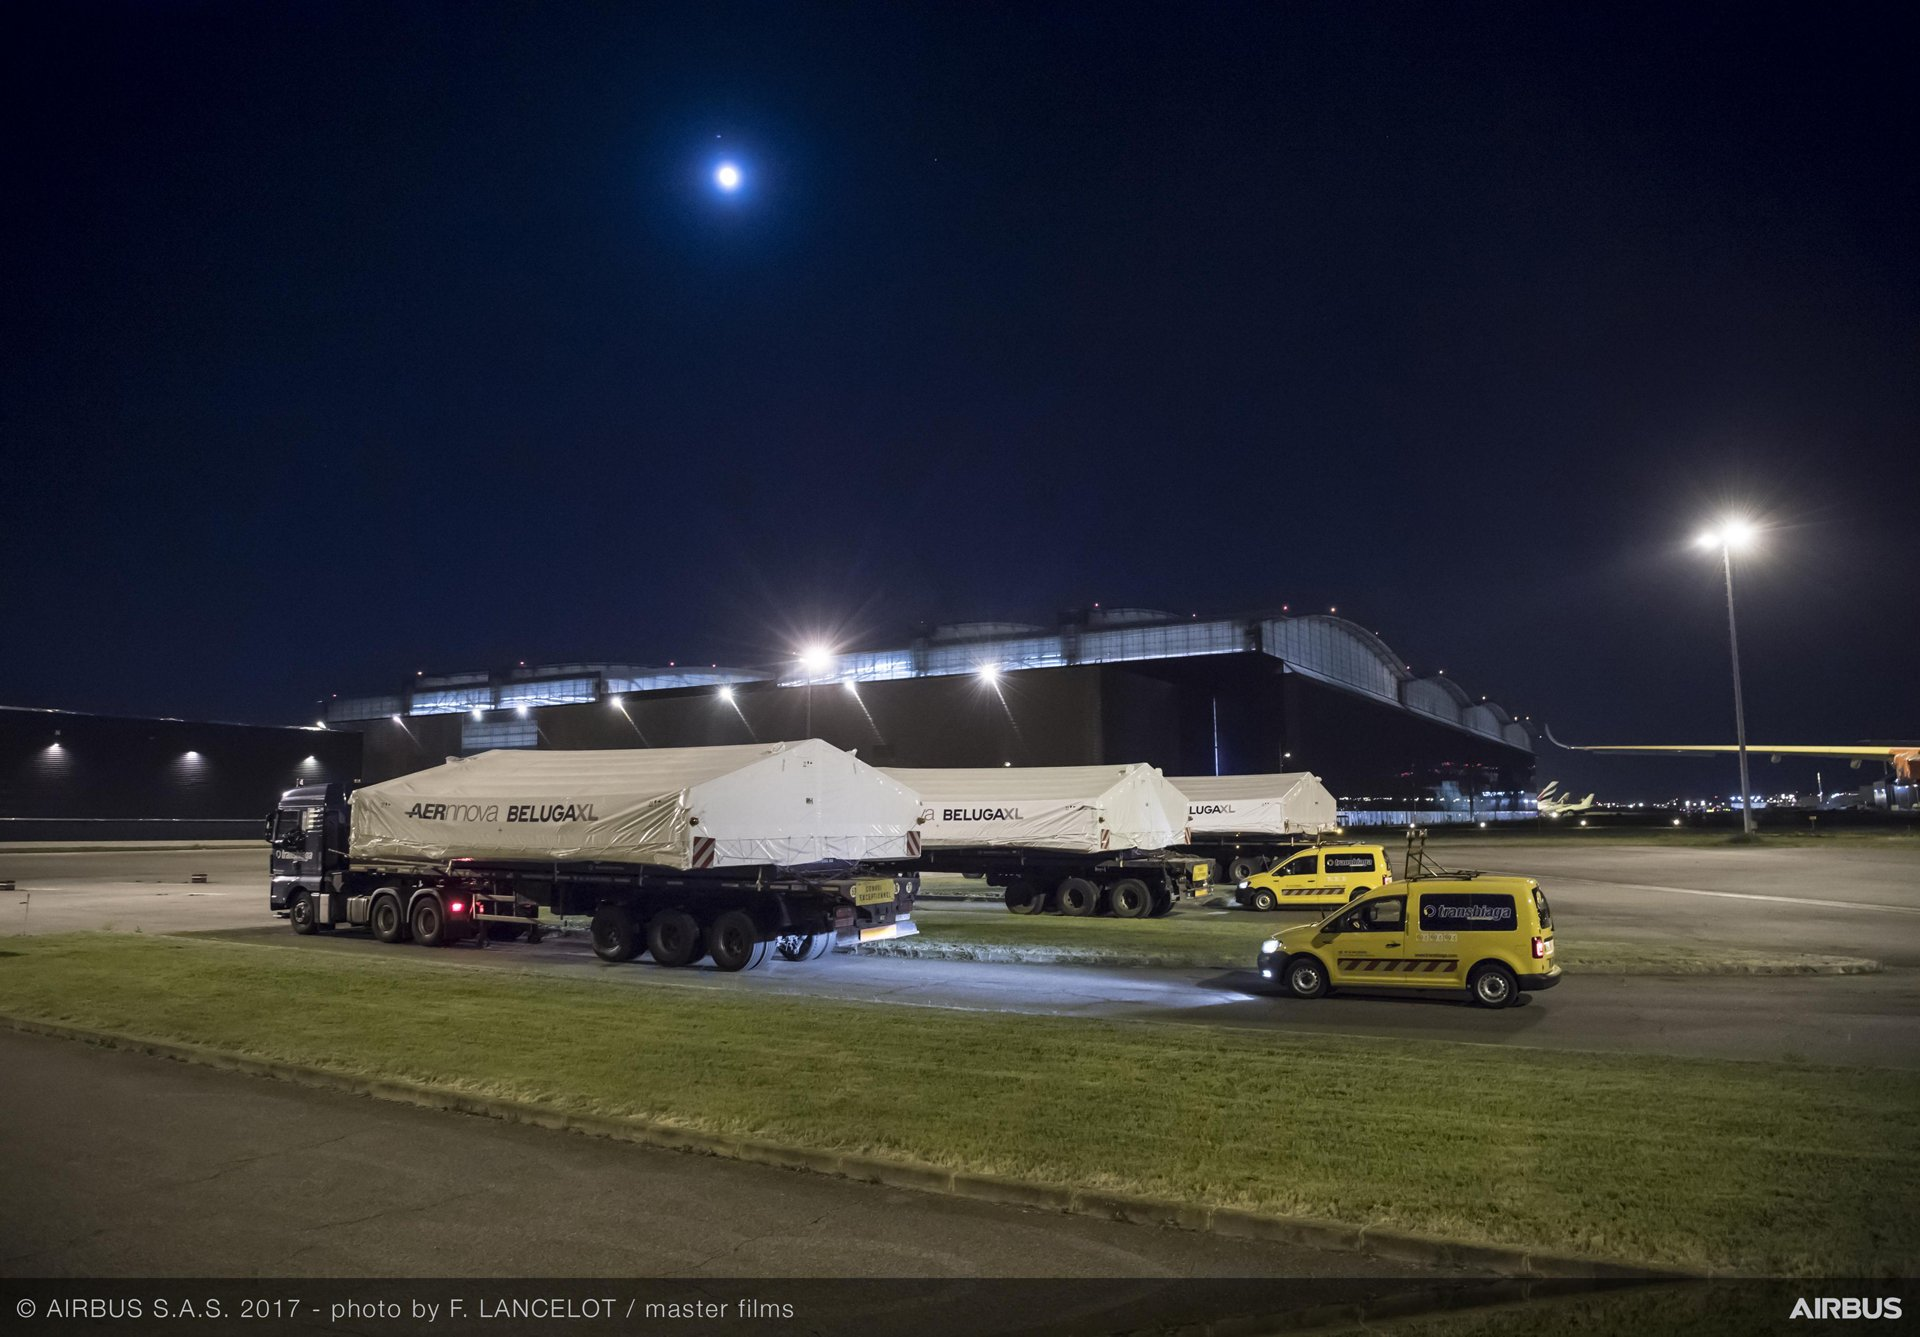 BelugaXL_First large sections 3